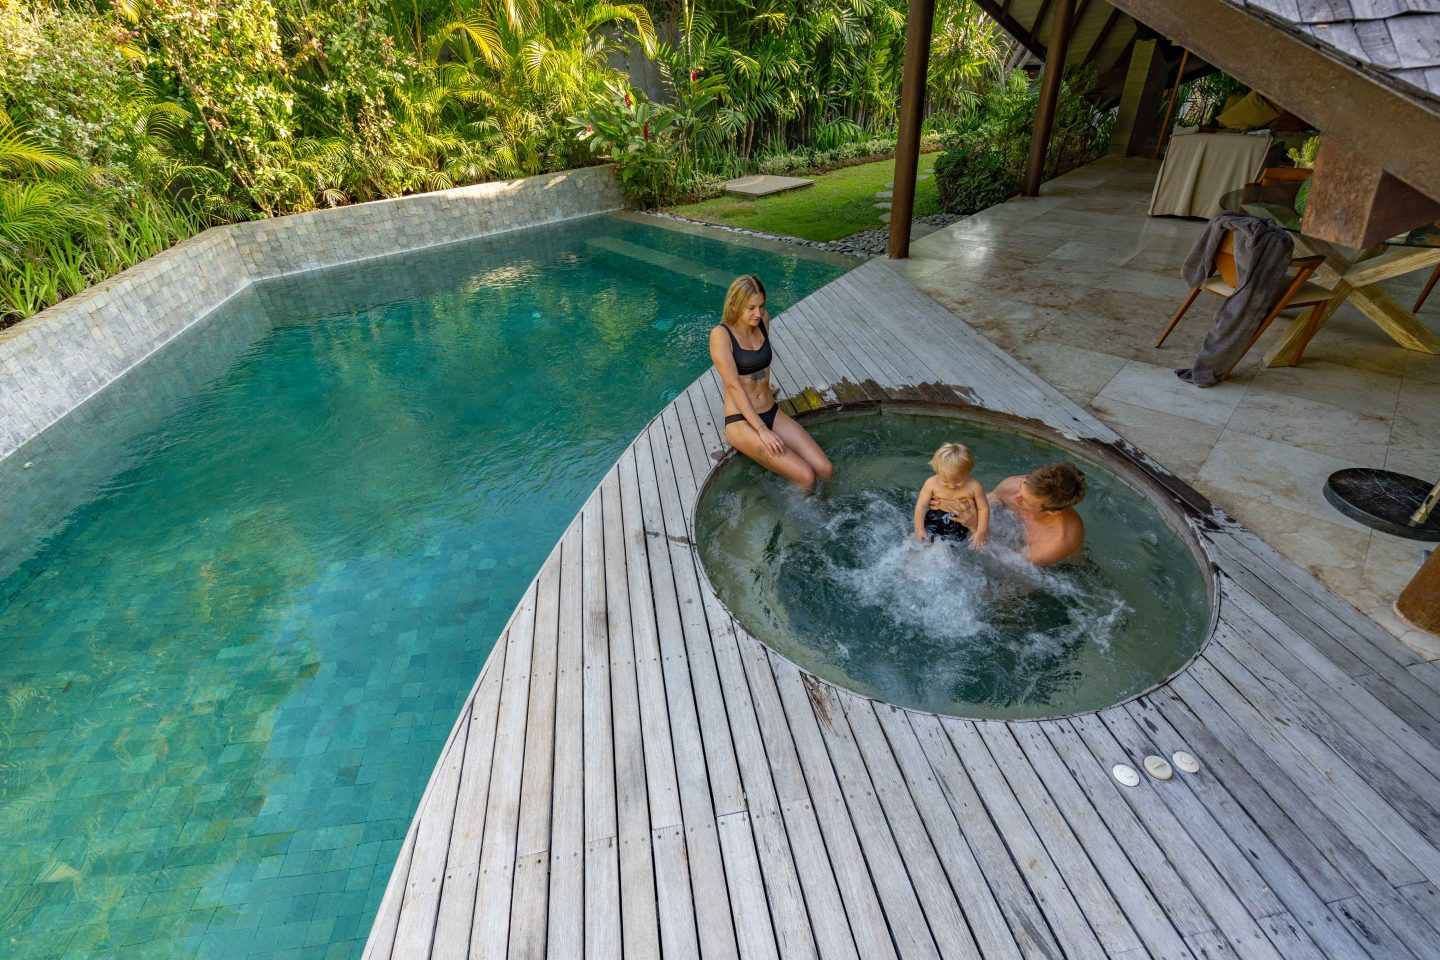 Pool, Jacuzzi and Gardens @ The Layar - Live Life and Roam